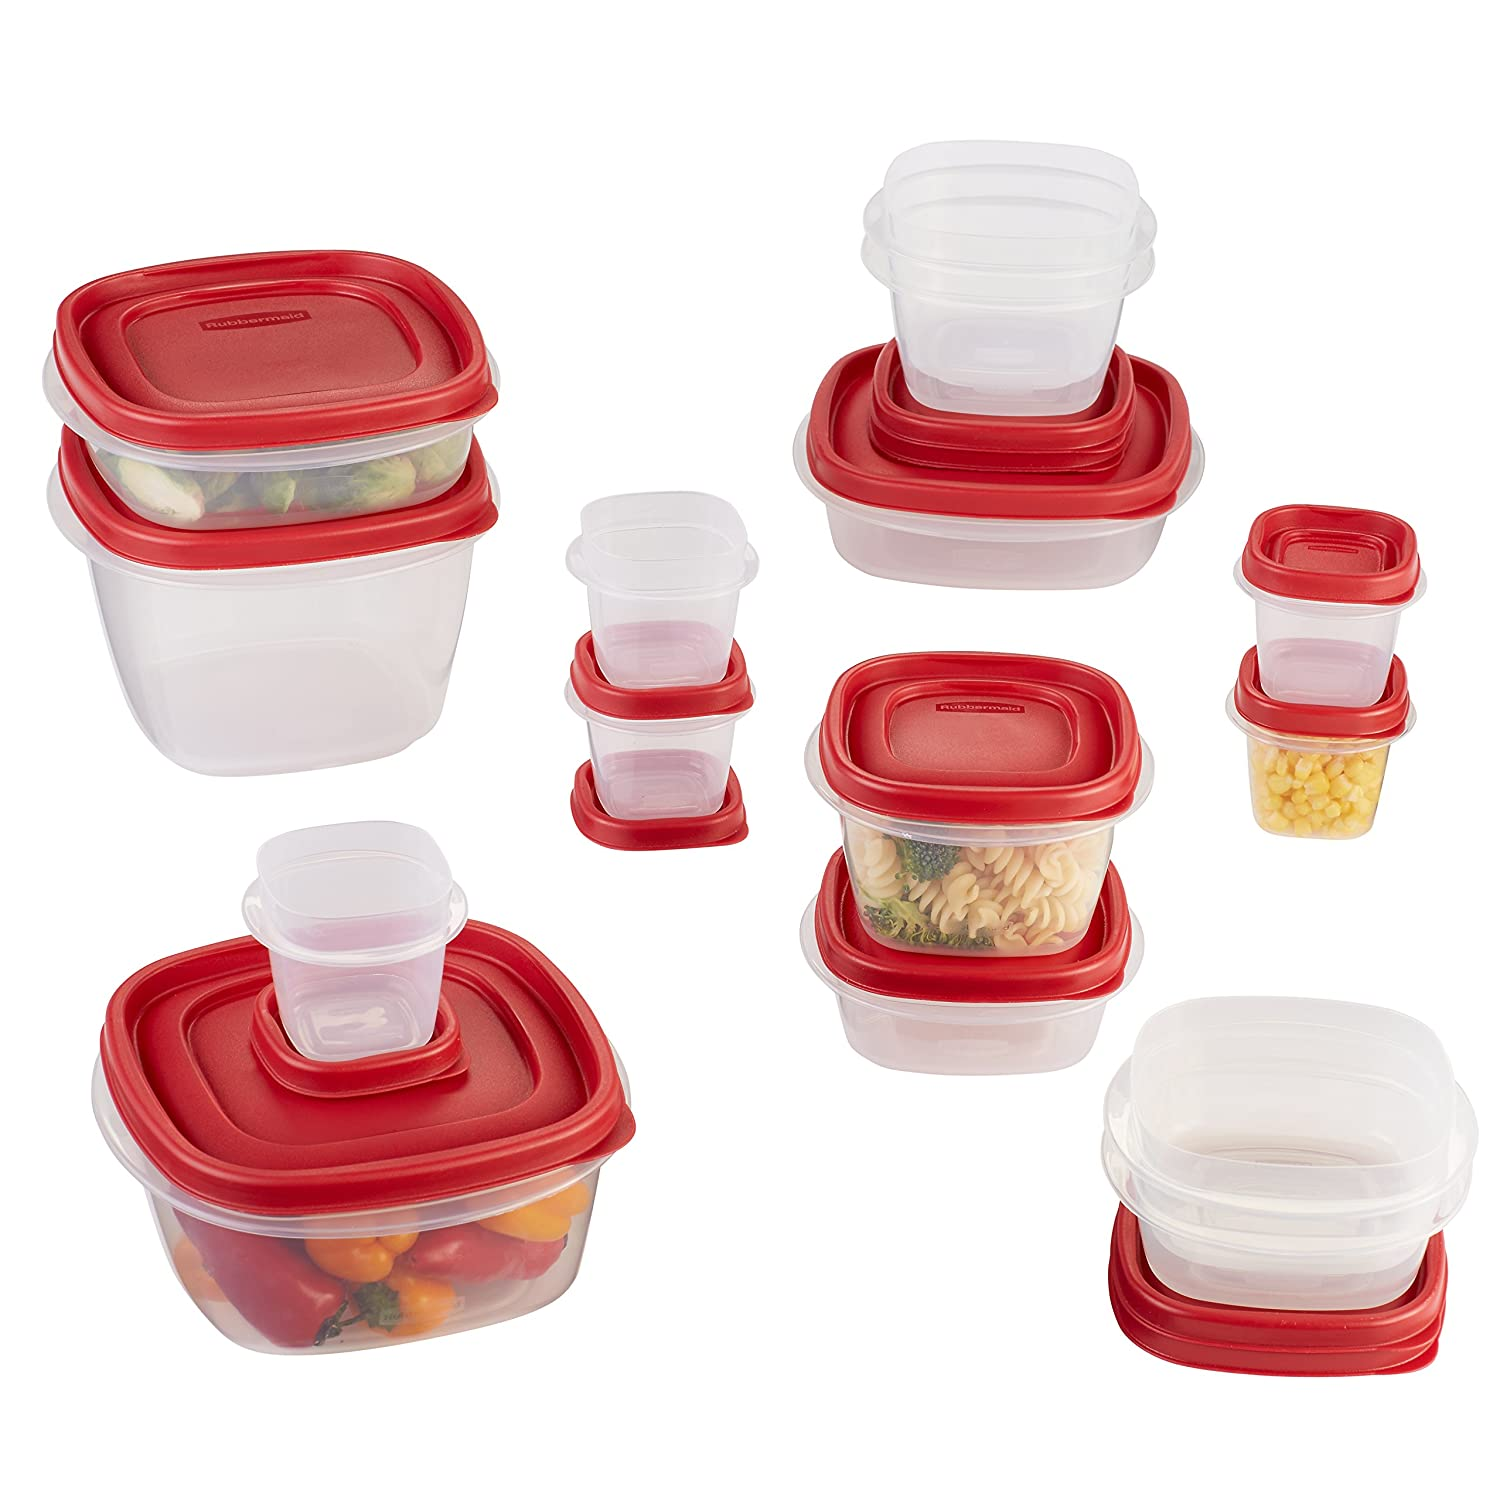 Rubbermaid Easy Find Lid Food Storage Container, BPA-Free Plastic, 30-Piece Set (1887941)